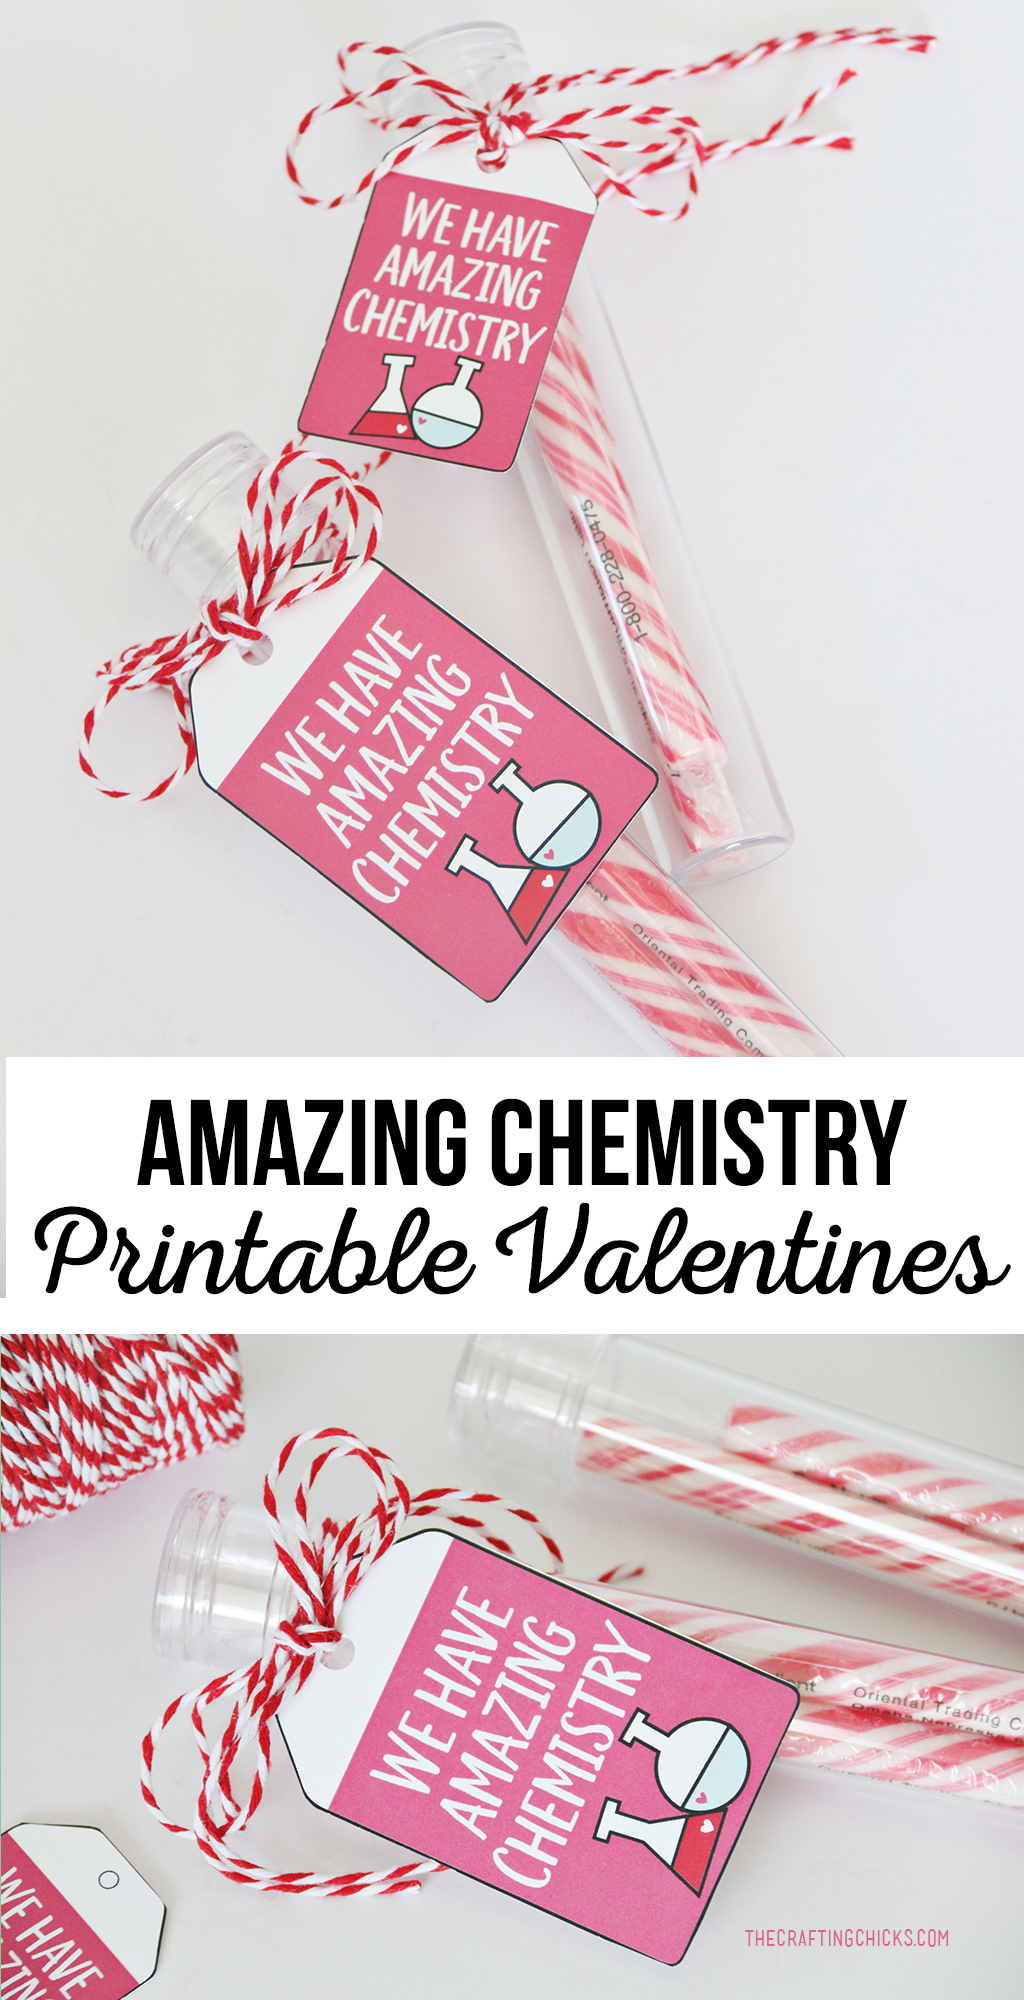 We Have Amazing Chemistry Printable Valentine